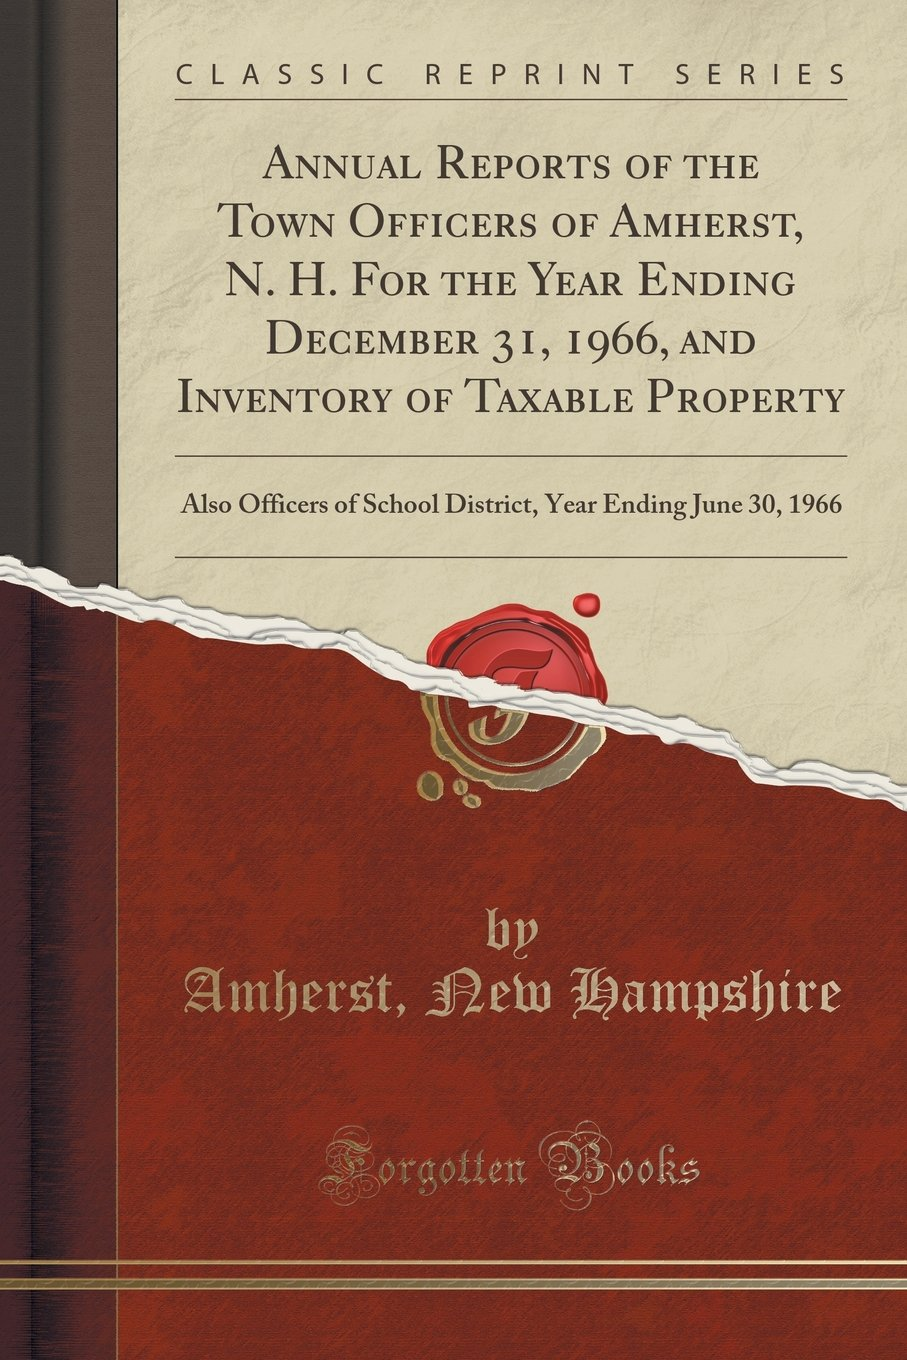 Read Online Annual Reports of the Town Officers of Amherst, N. H. For the Year Ending December 31, 1966, and Inventory of Taxable Property: Also Officers of ... Year Ending June 30, 1966 (Classic Reprint) ebook